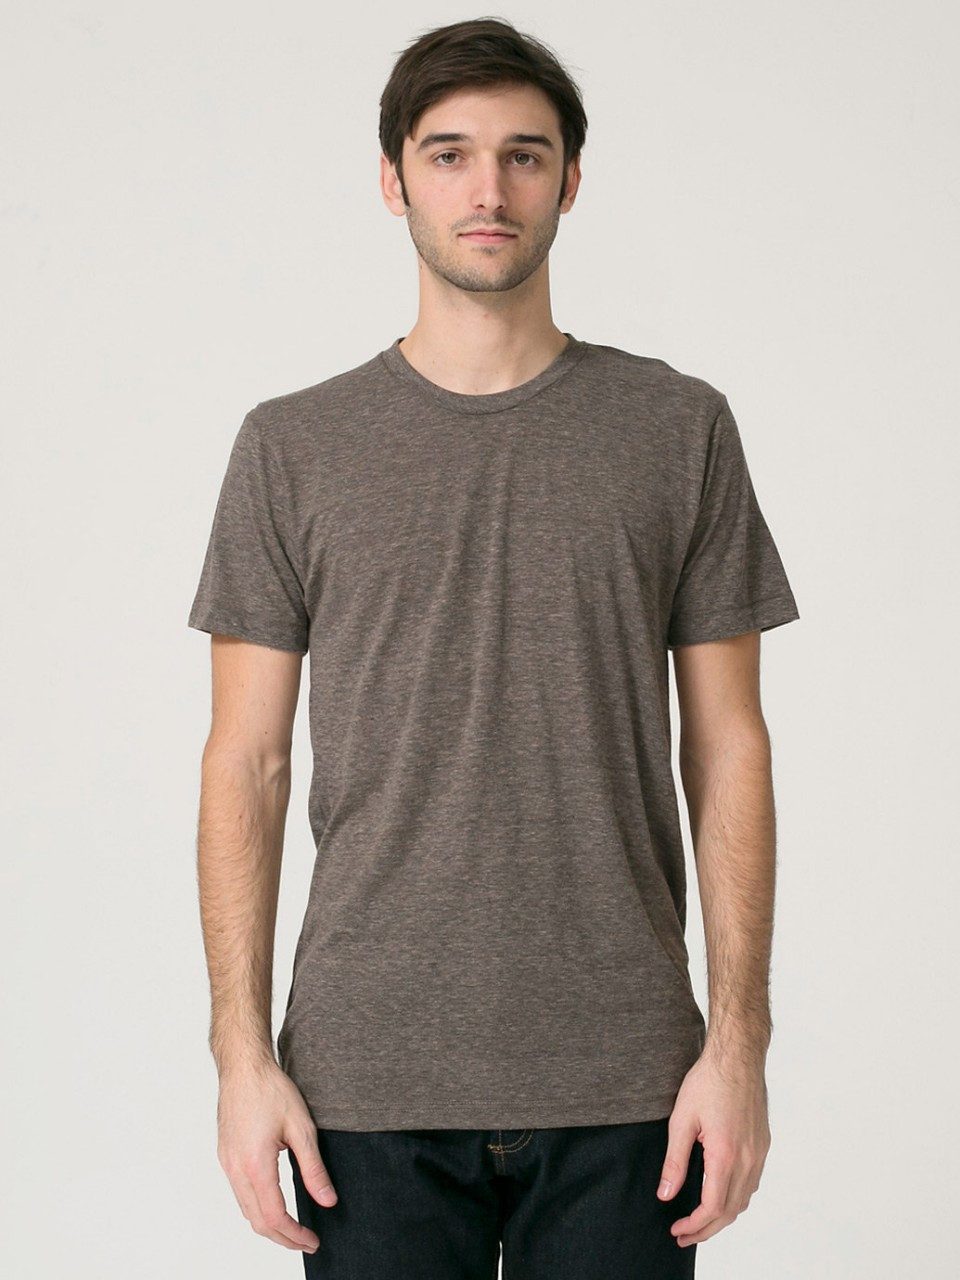 1203d2c872b American Apparel TR401   Unisex Tri-Blend Short Sleeve Track Tee. Please  Call for Current Pricing. (You save ). SKU  TR401. Coffee